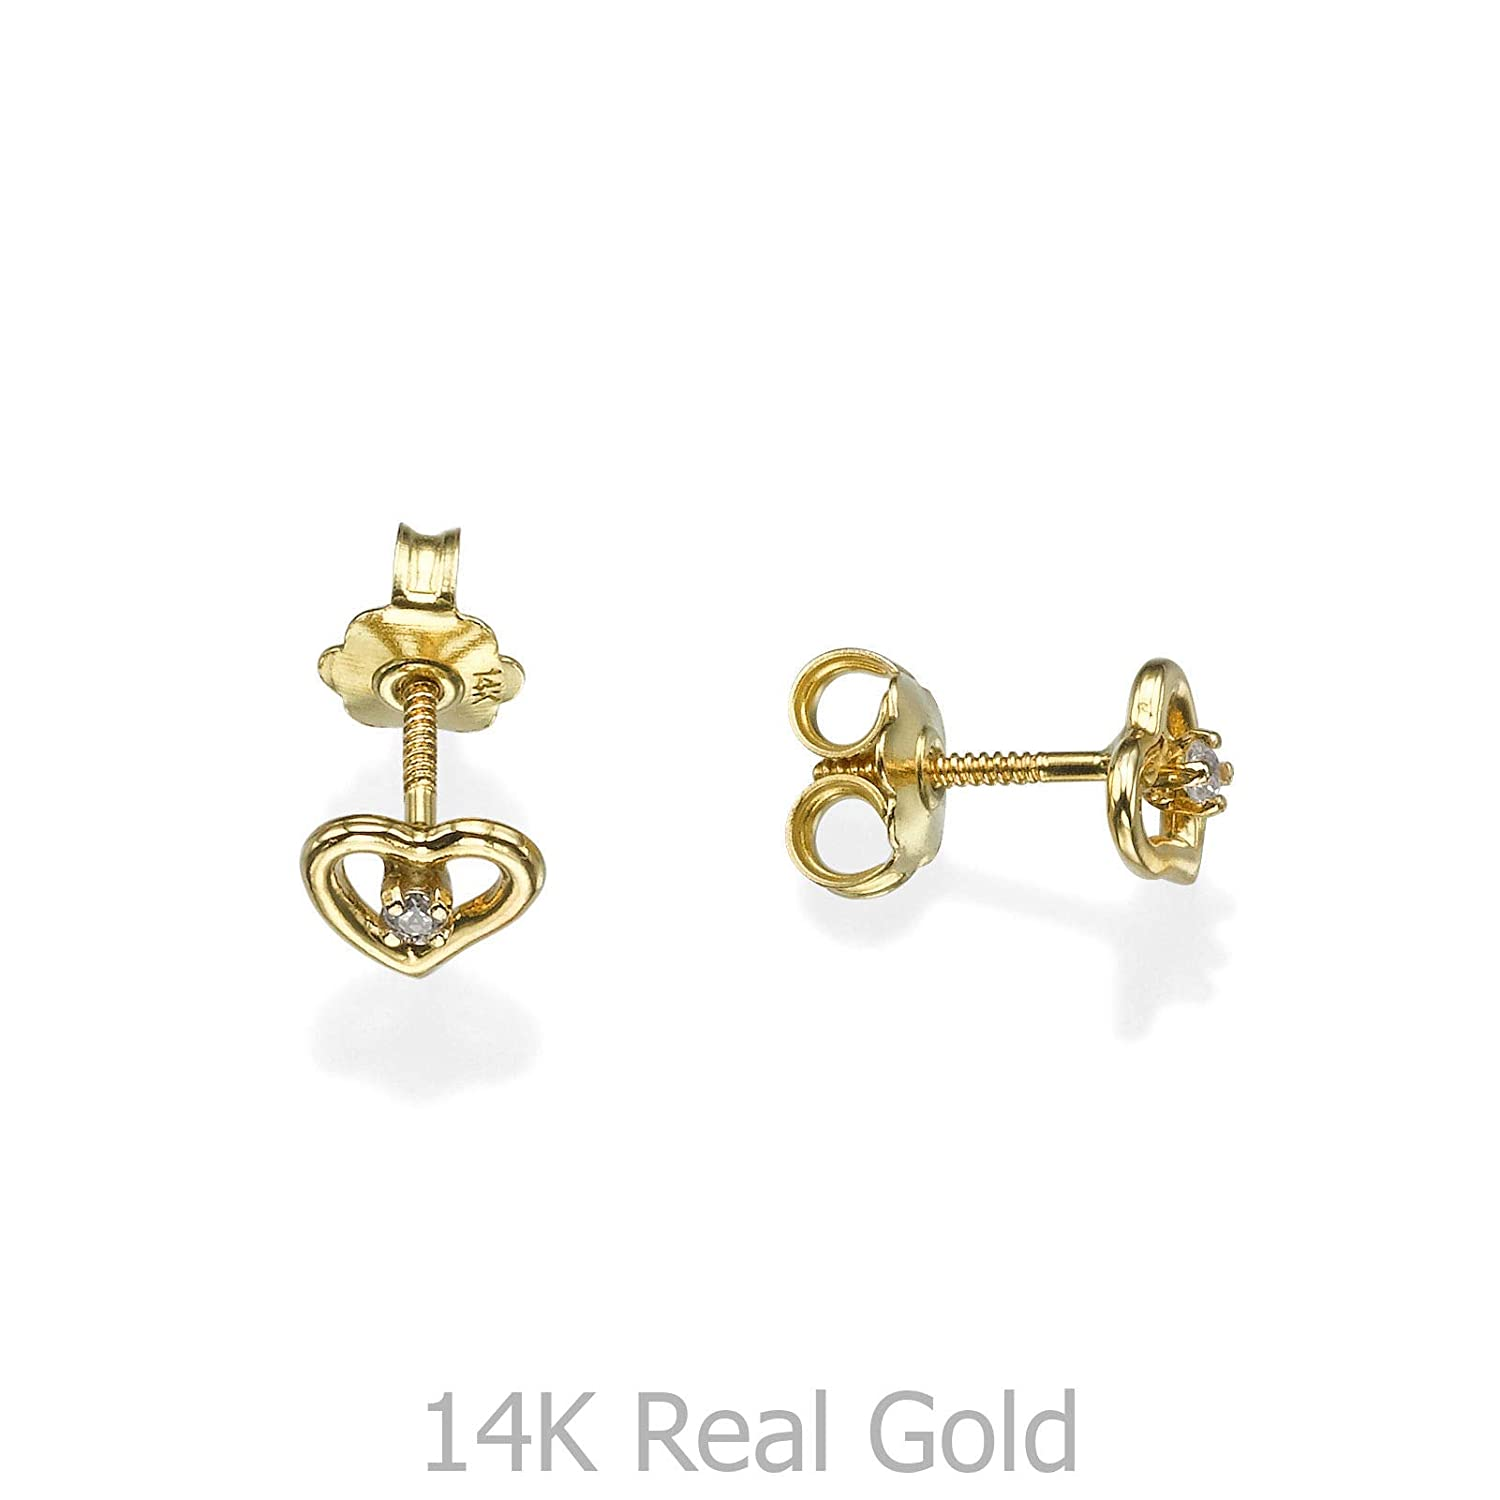 Delicate 14K Yellow Gold Heart with Round cubic zirconia Screwback Stud Earrings Girl Jewelry Gift